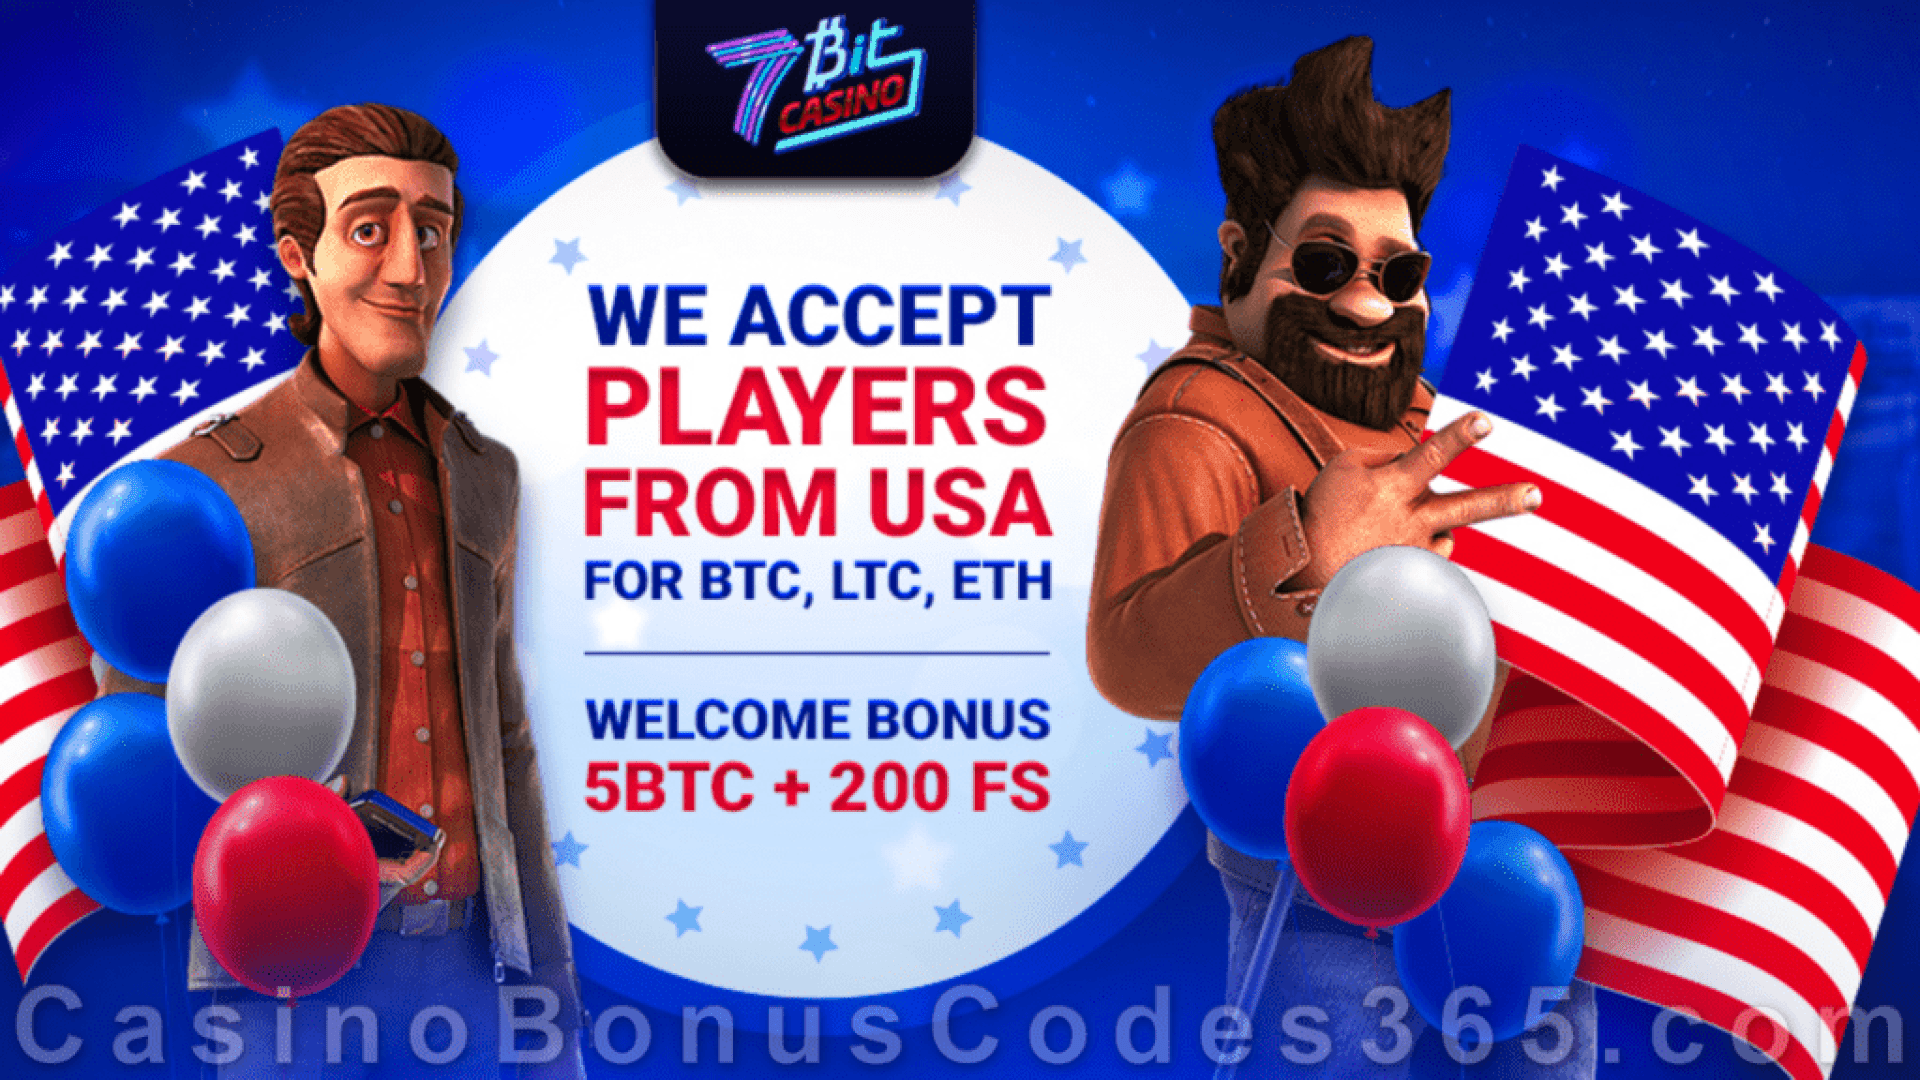 7BitCasino 5 BTC plus 200 FREE Spins Bitcoin Welcome Bonus